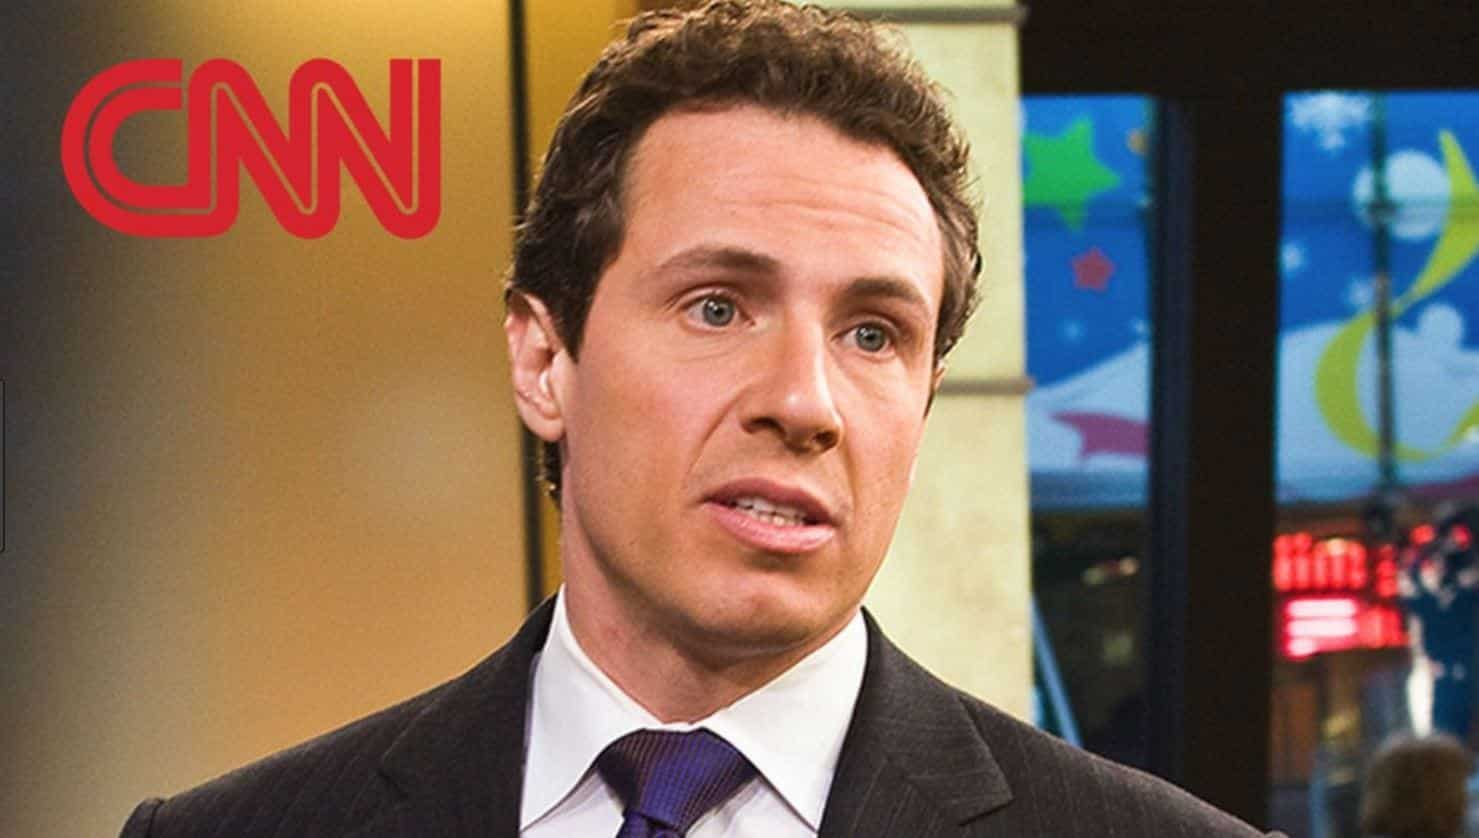 CNN Is Moving Chris Cuomo To Prime Time